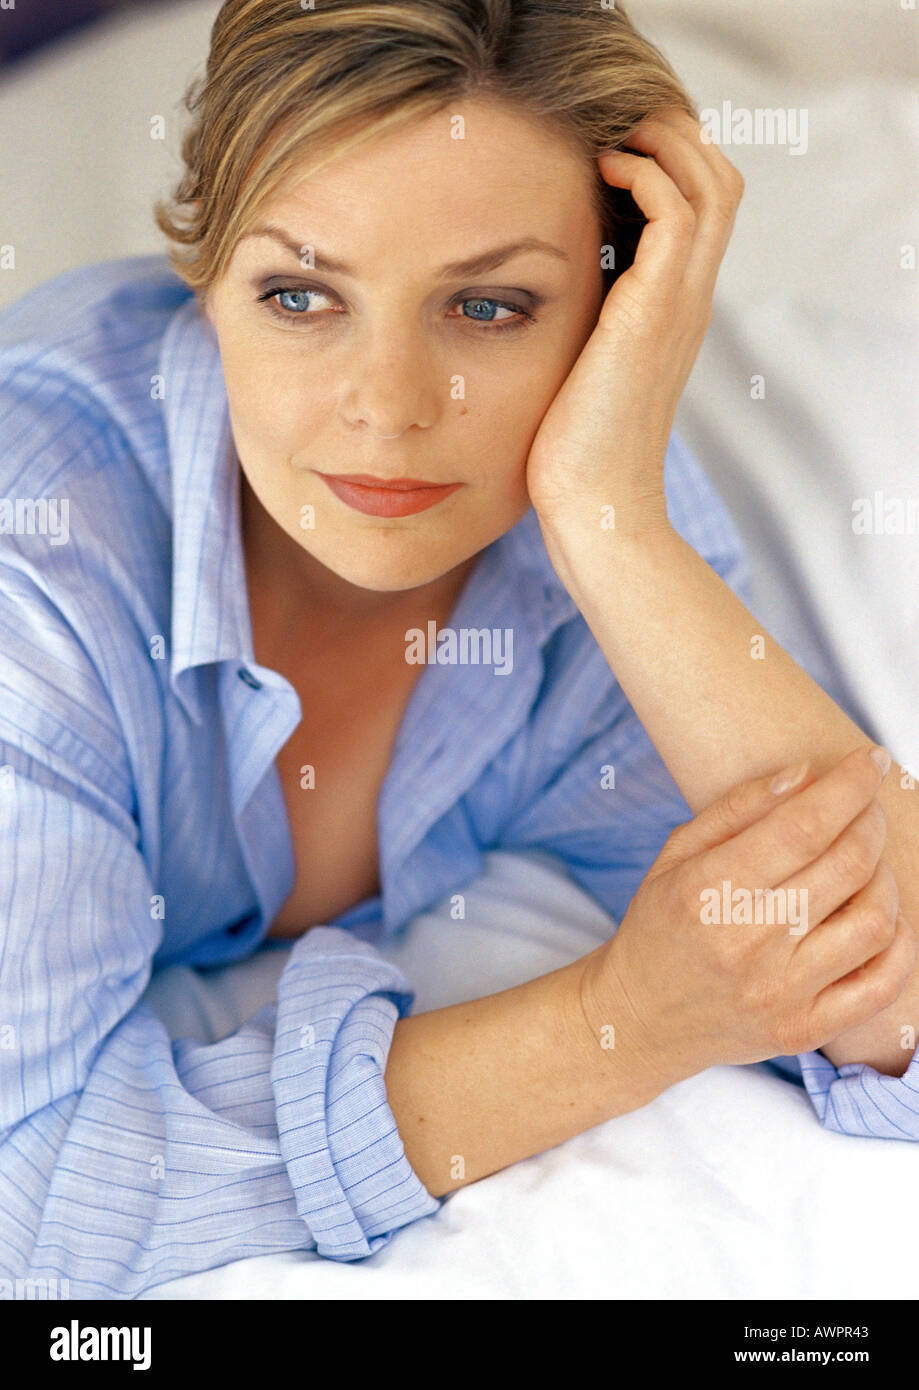 Woman leaning on elbow, close-up - Stock Image